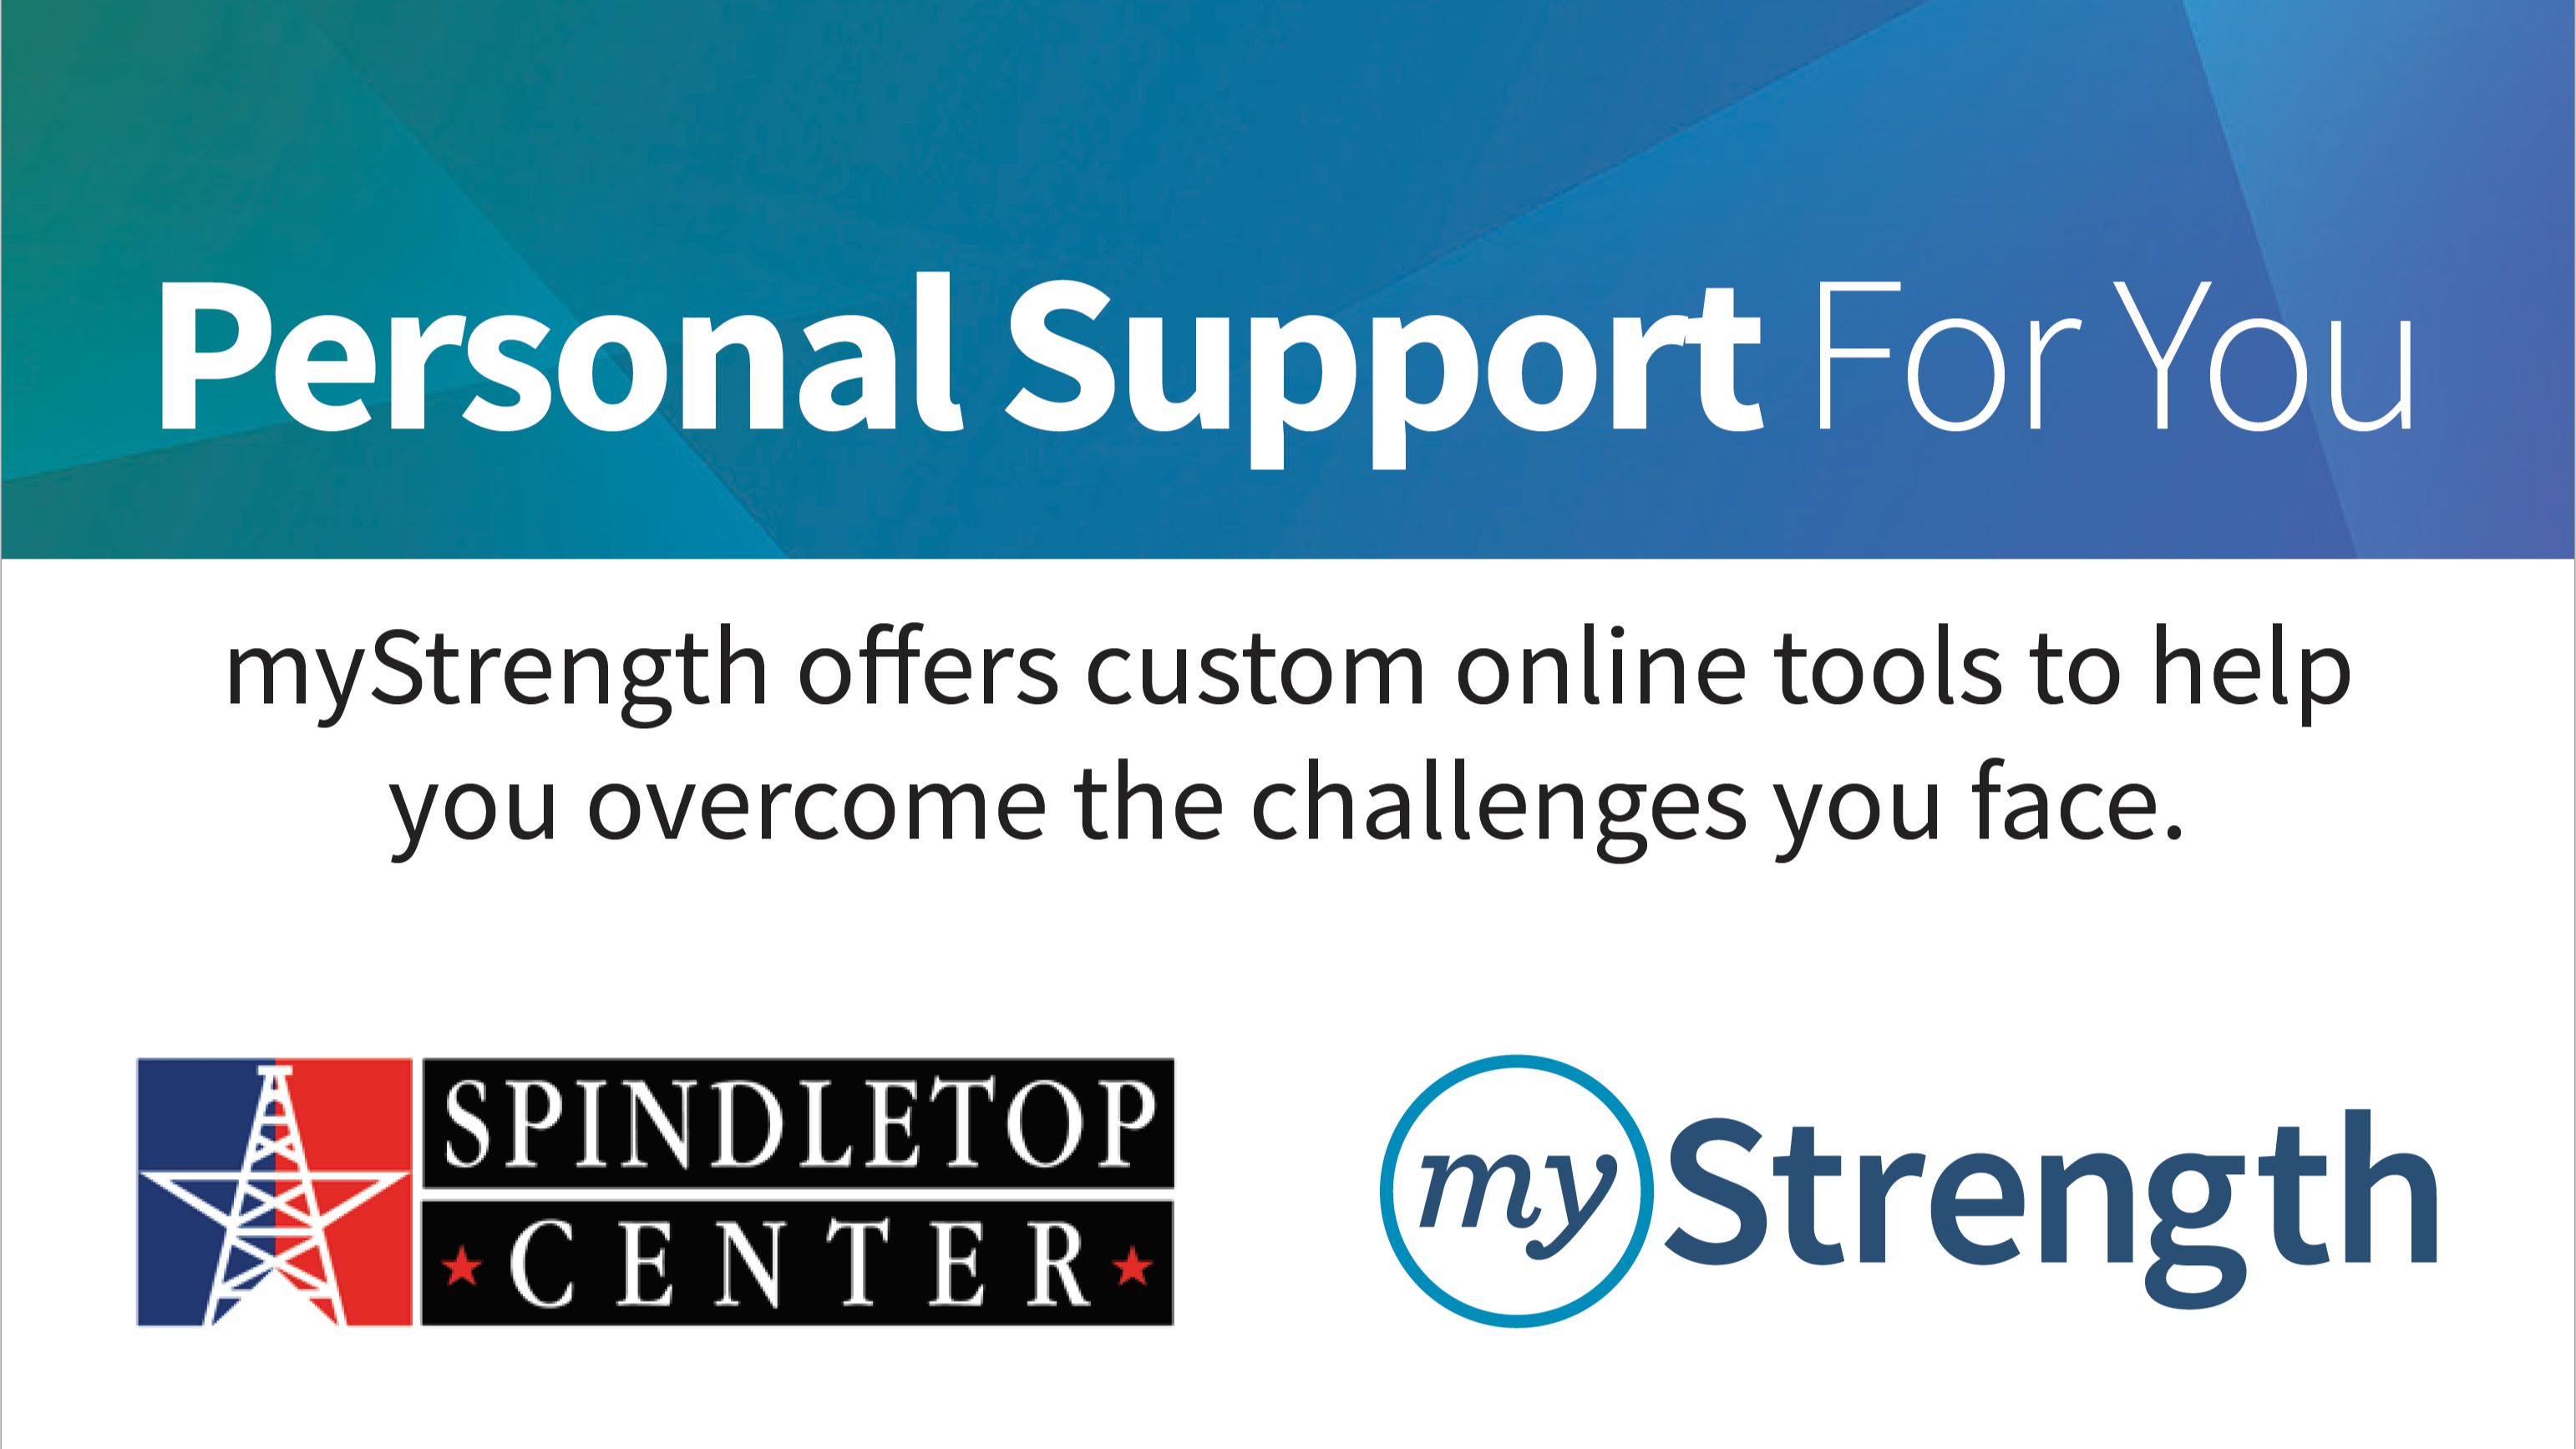 Personal Support for You: myStrength offers custom online tools to help you overcome the challenges you face